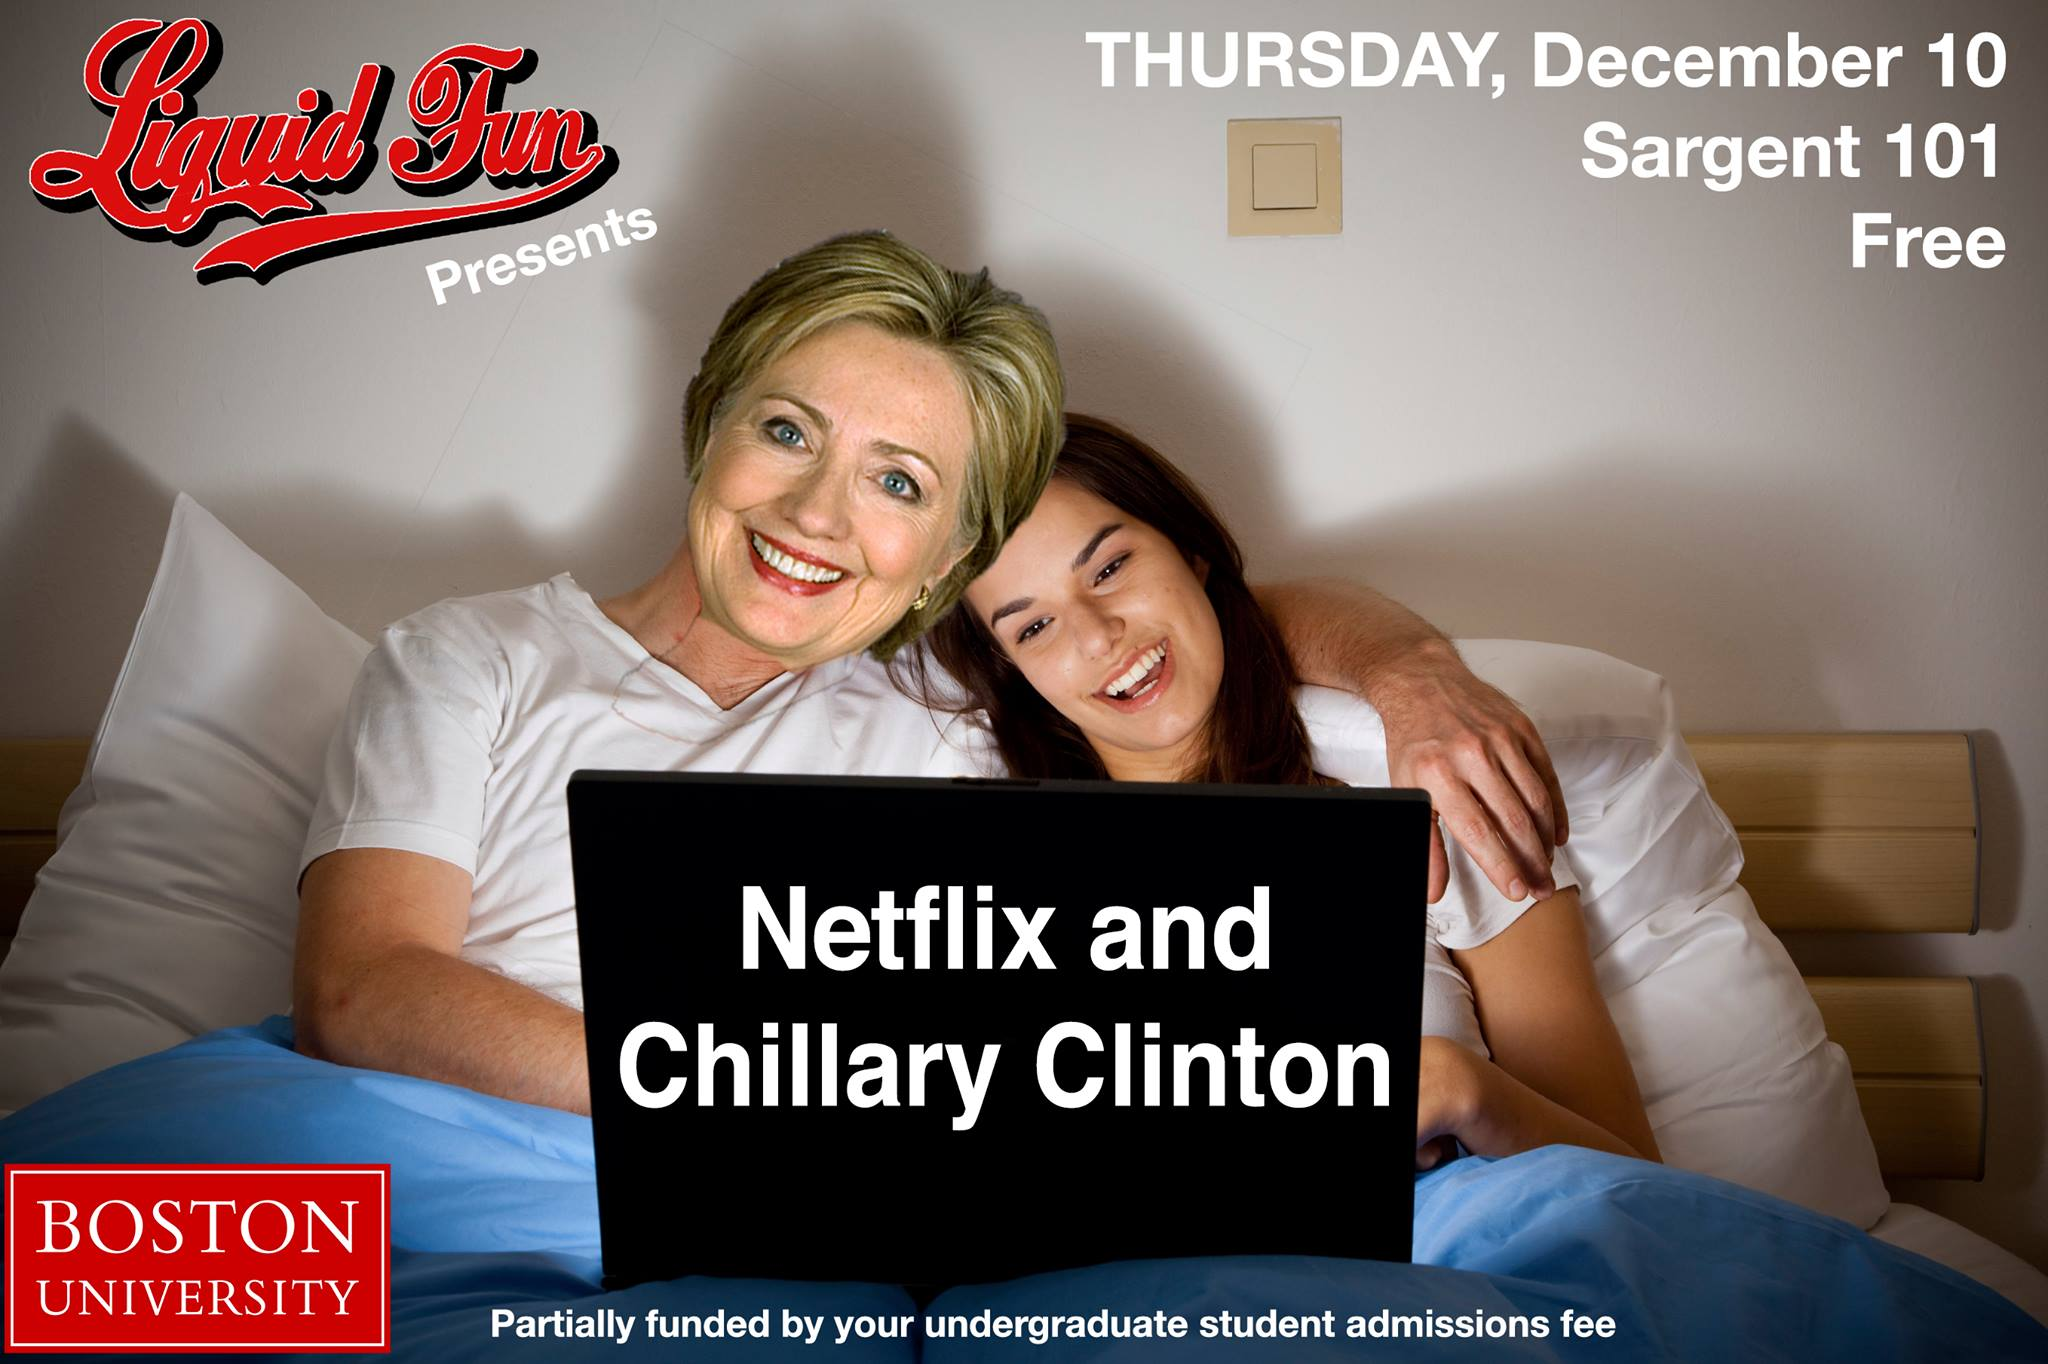 Netflix and Chillary Clinton